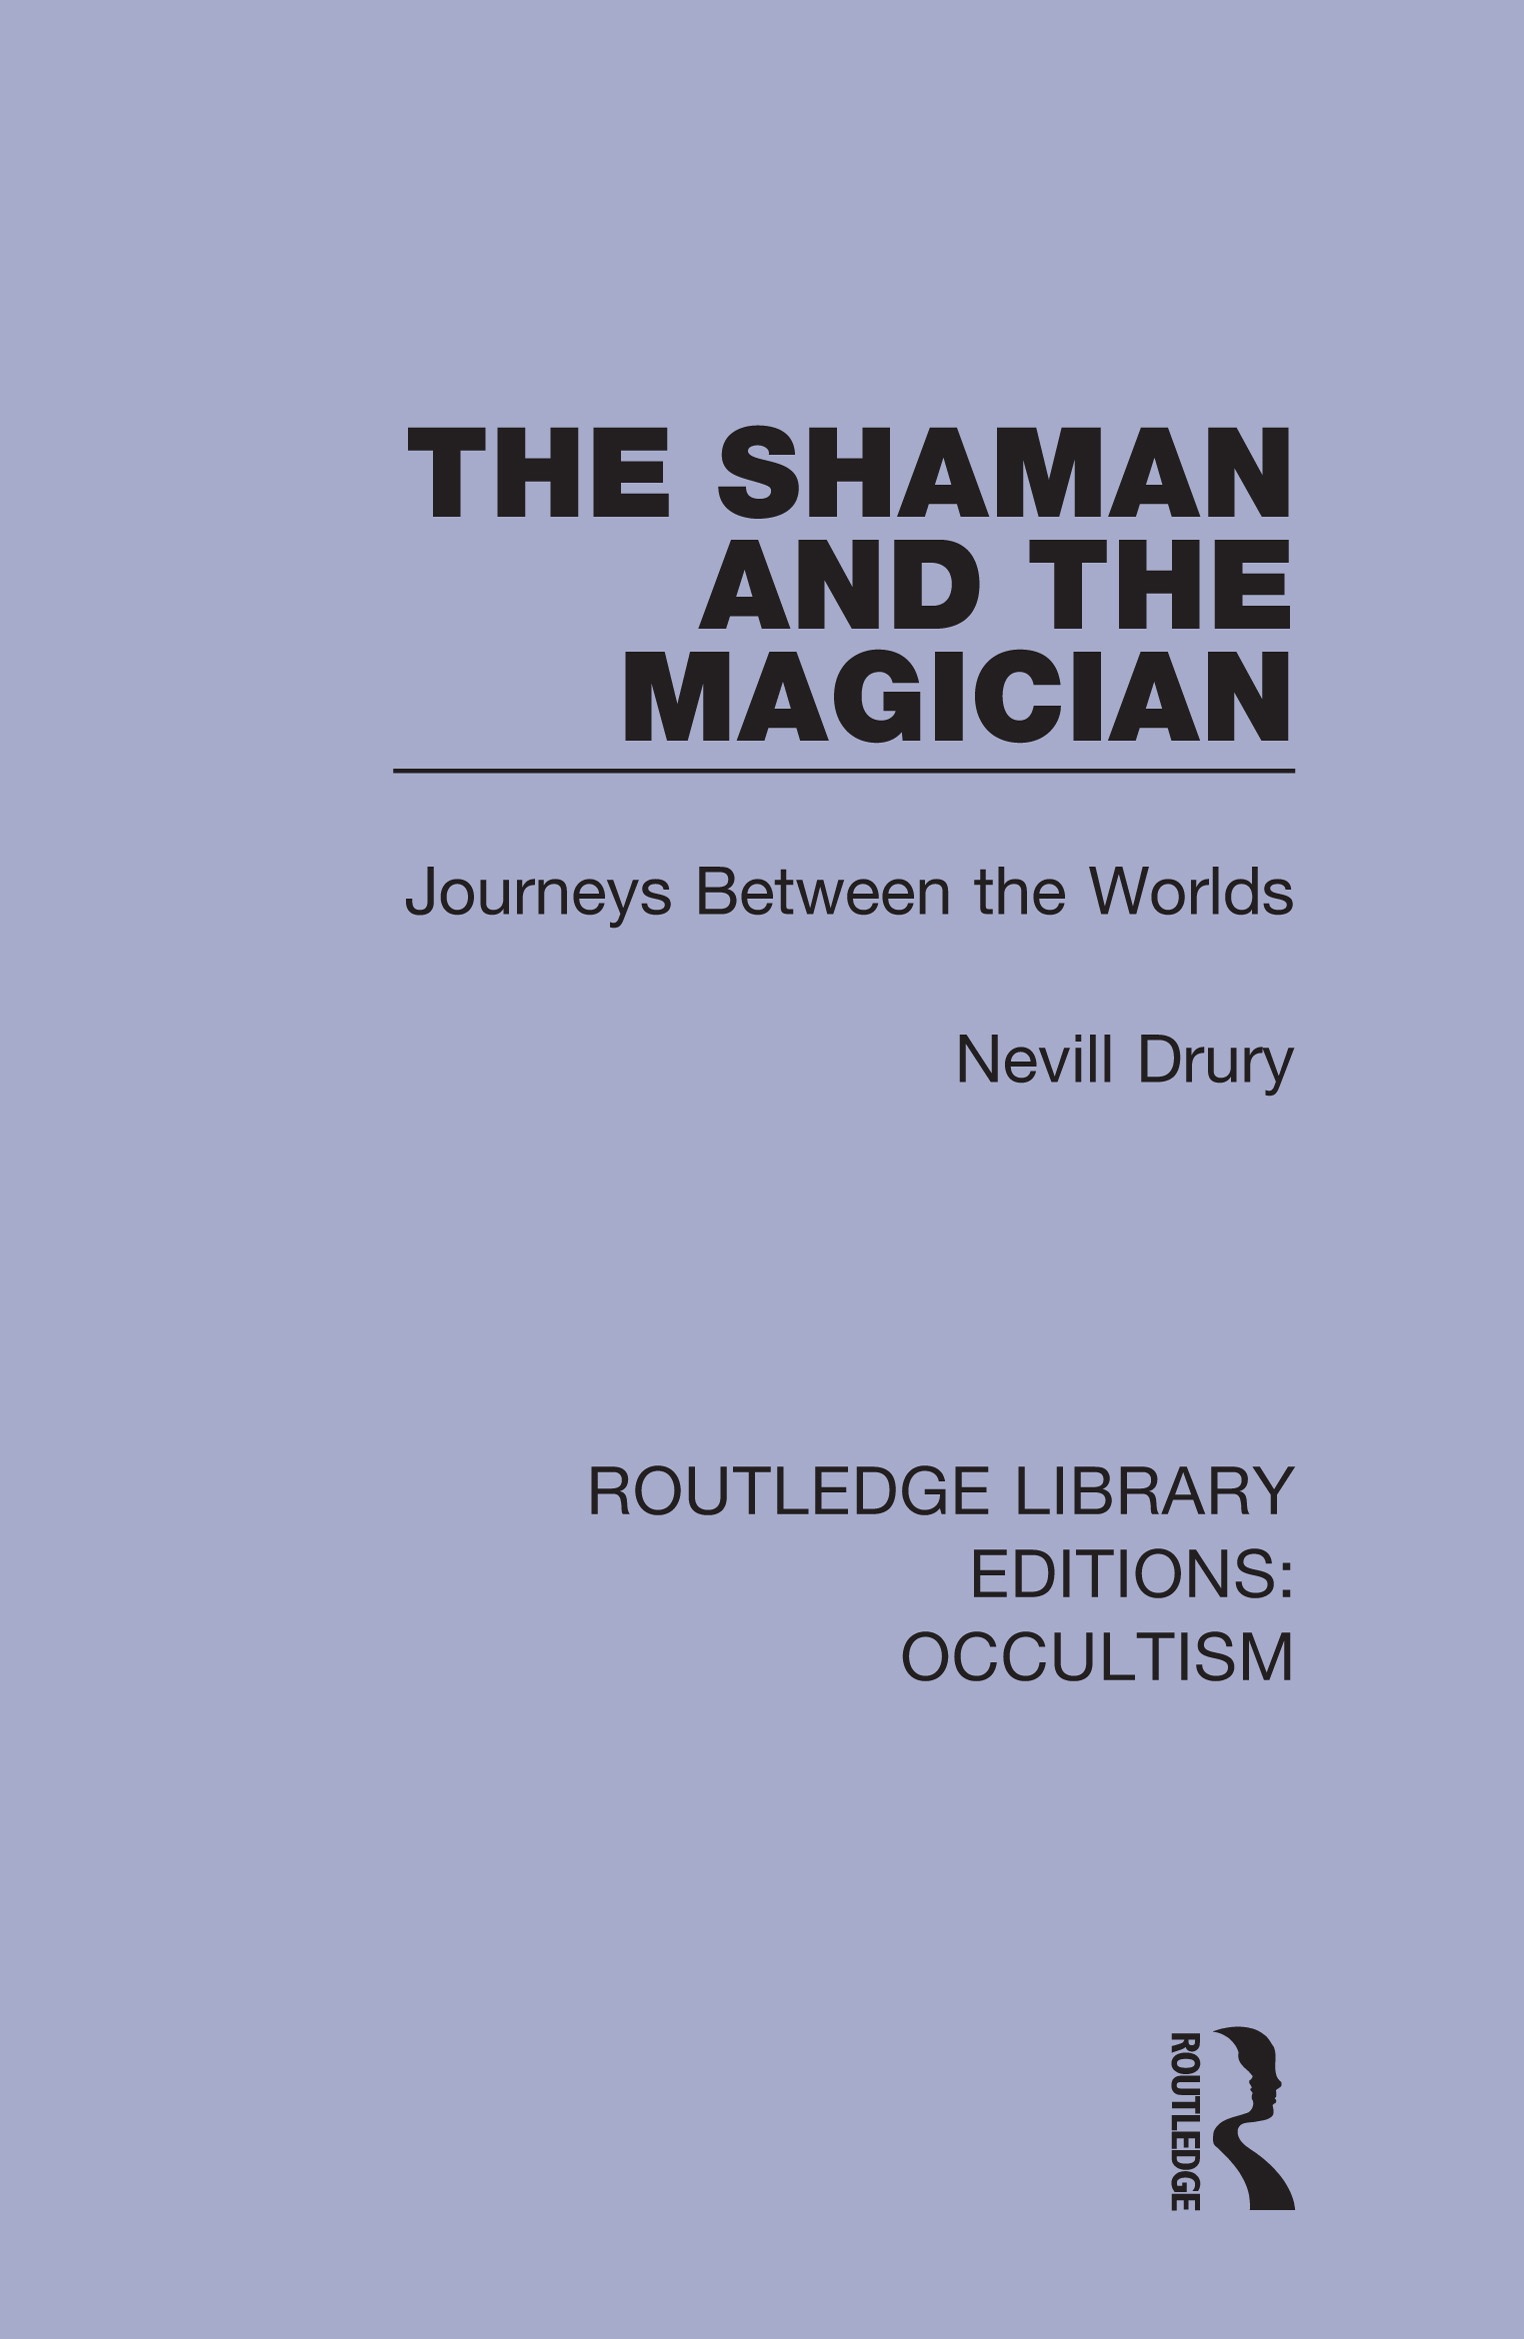 The Shaman and the Magician: Journeys Between the Worlds book cover